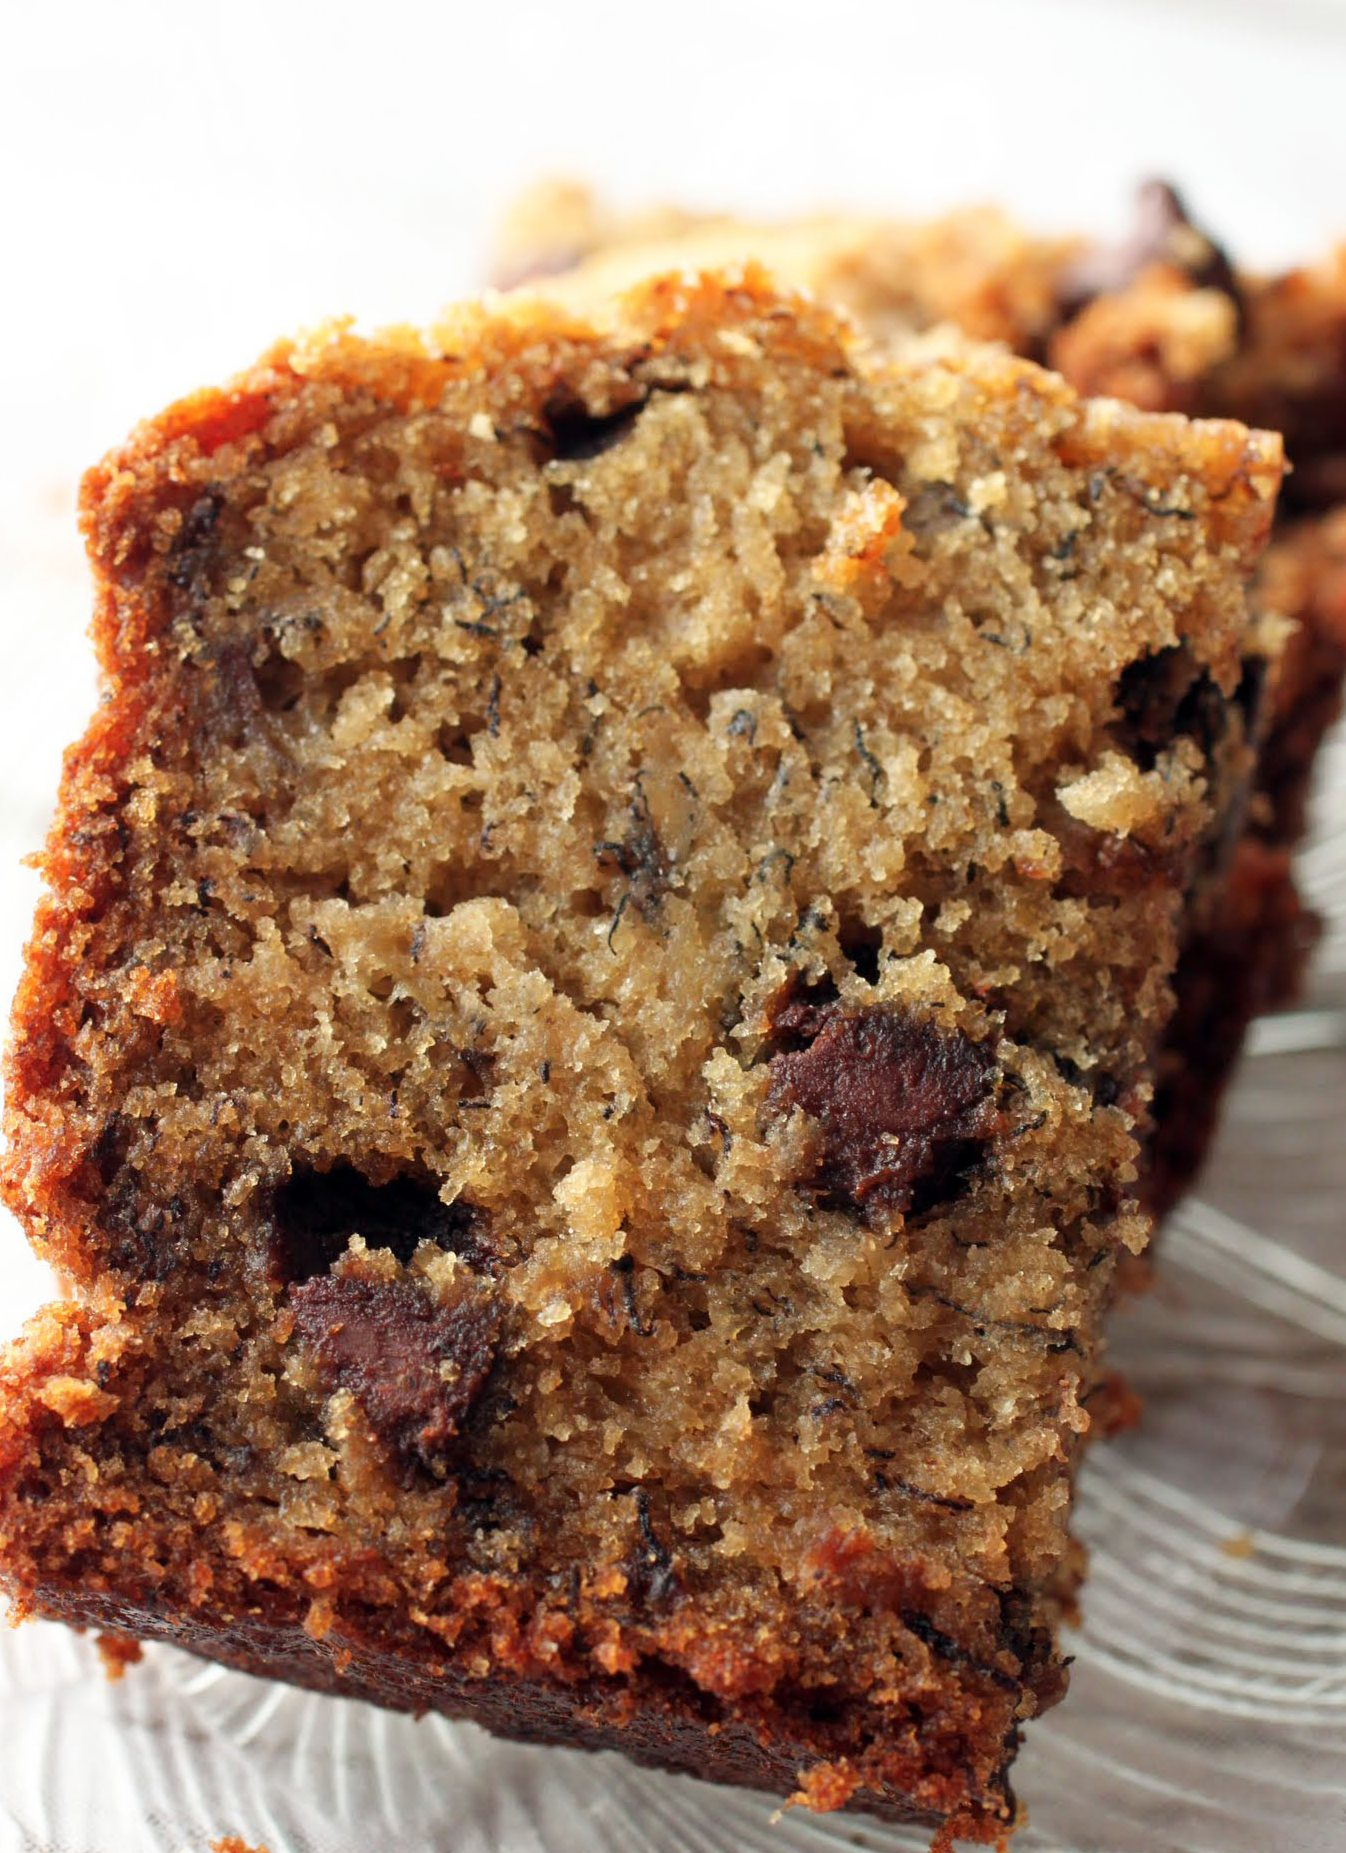 Chocolate Chip Streusel Banana Bread | Just About Baked